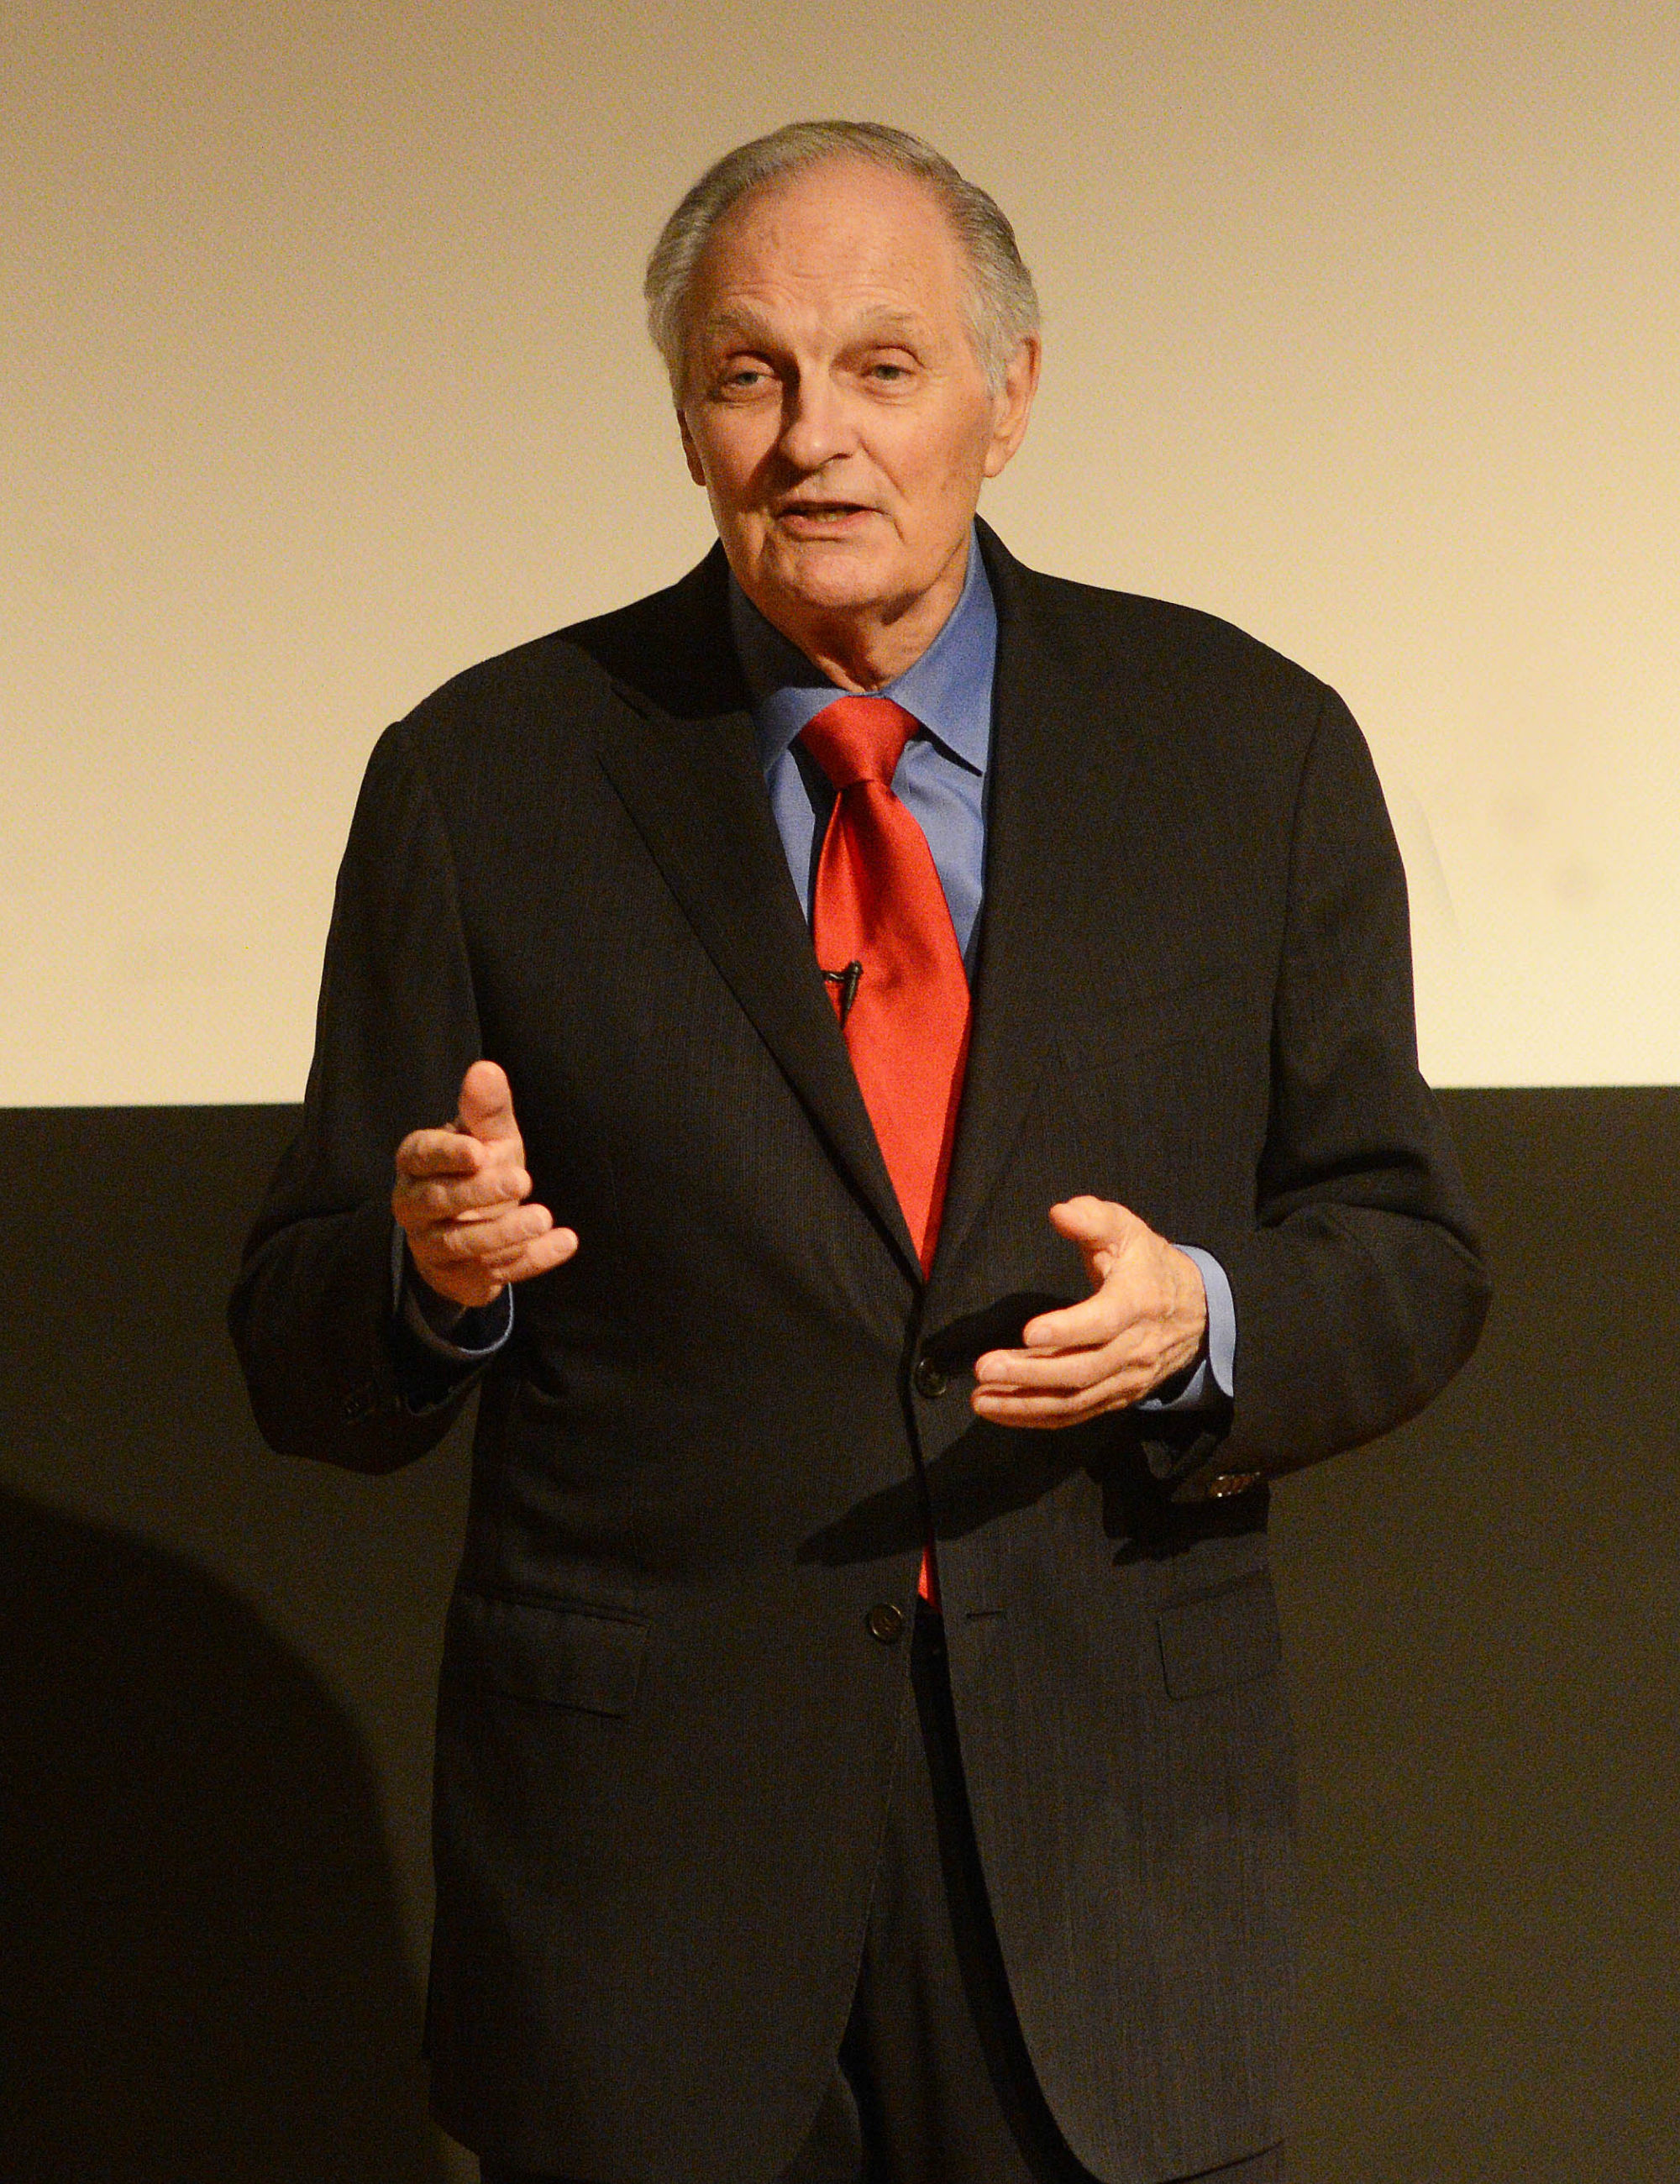 Alan Alda at Columbia cropped